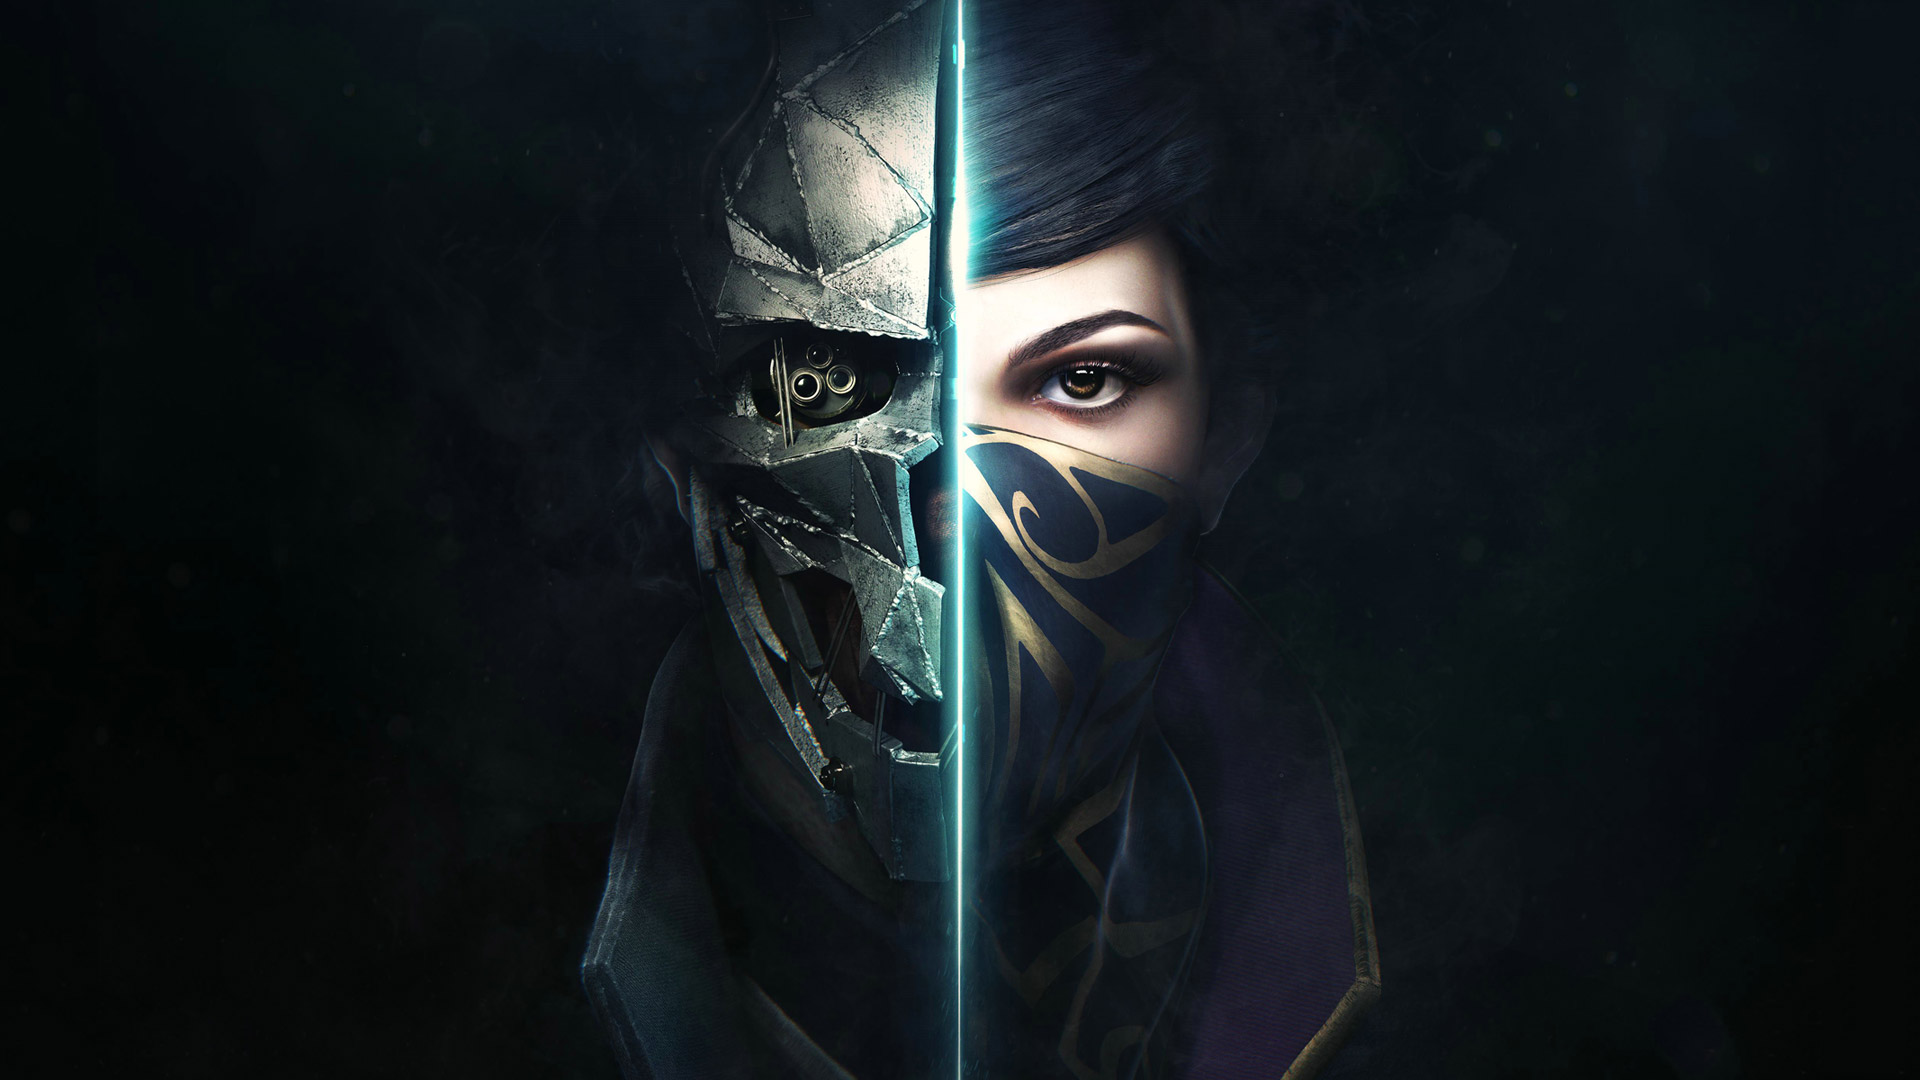 Dishonored 2 wallpaper 11